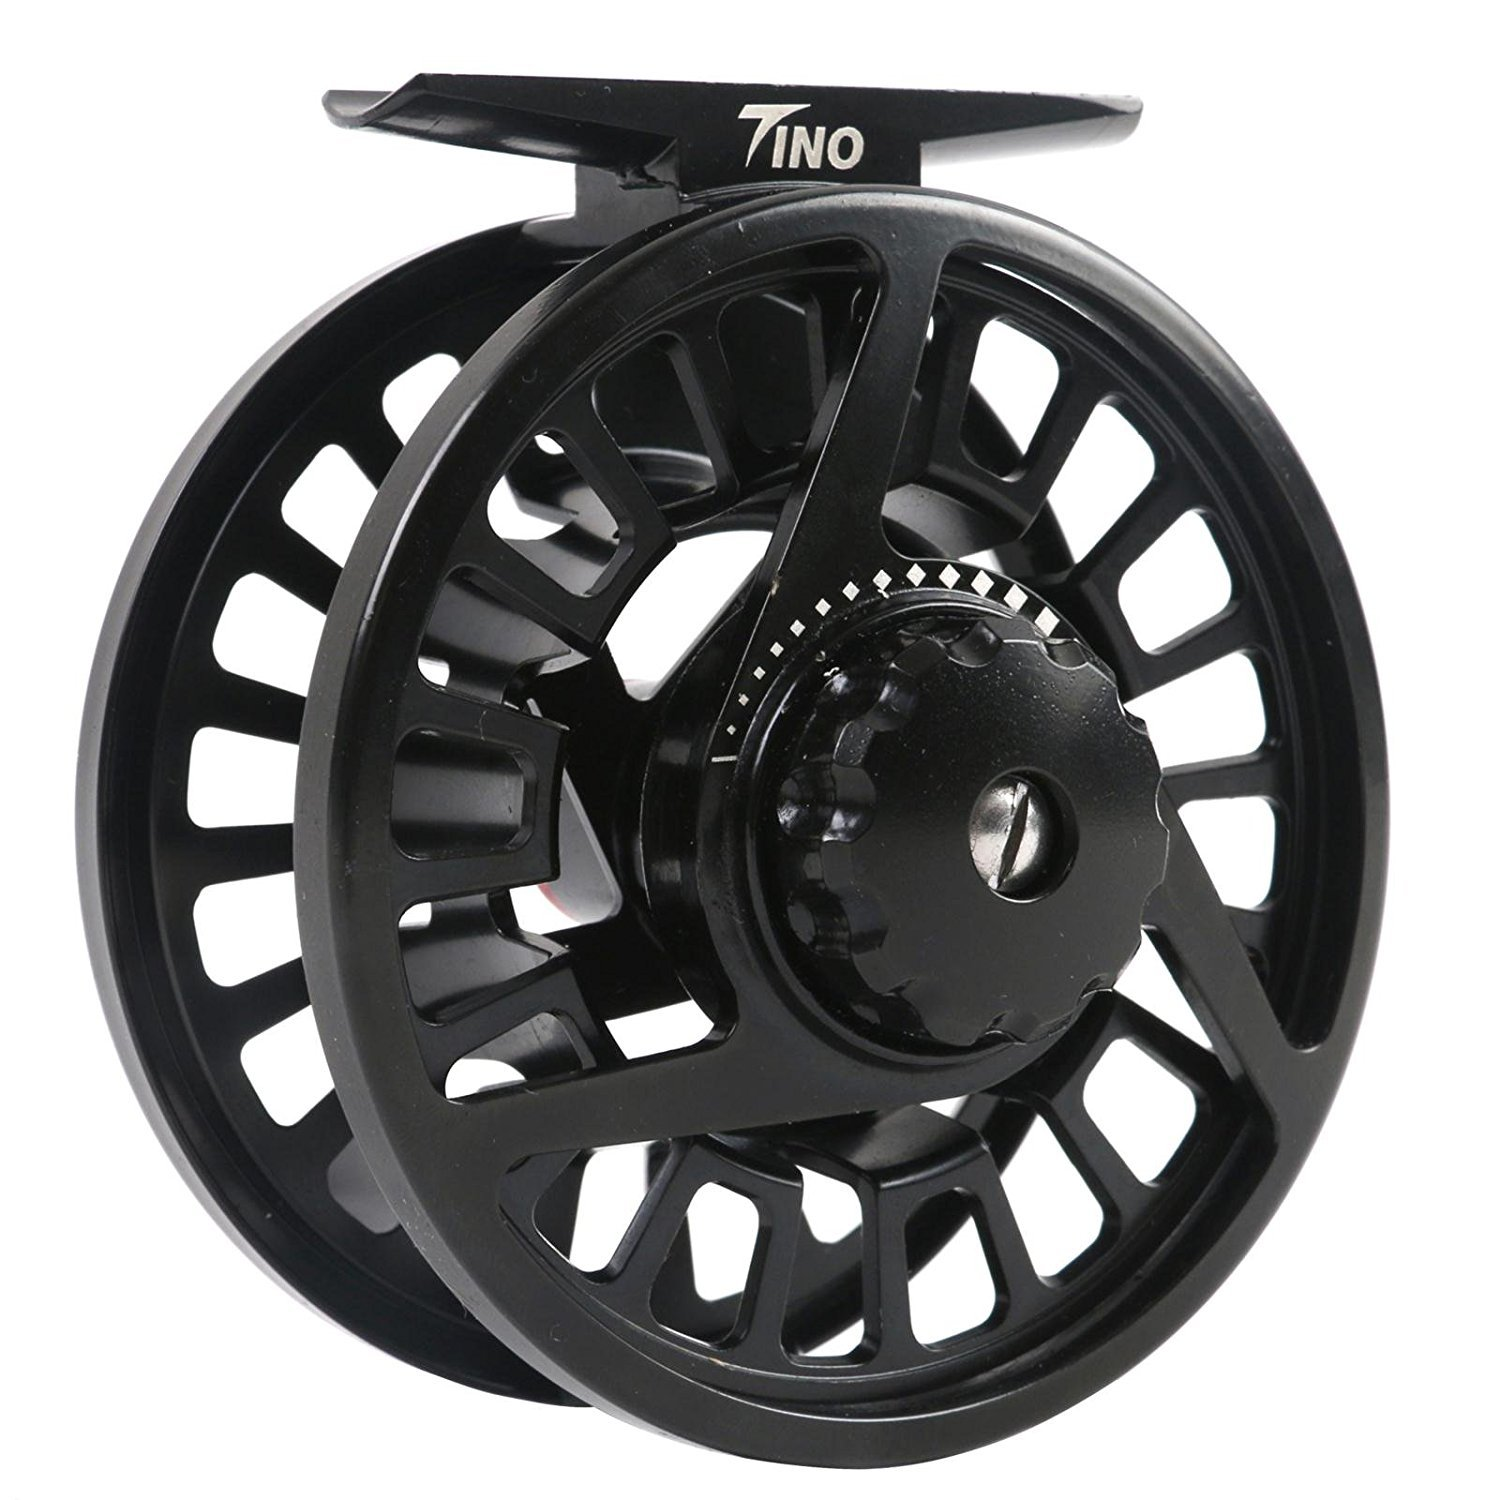 M MAXIMUMCATCH Tino Fly Fishing Reel, Large Arbor Trout Fly Reel 5 6,7 8 Weight